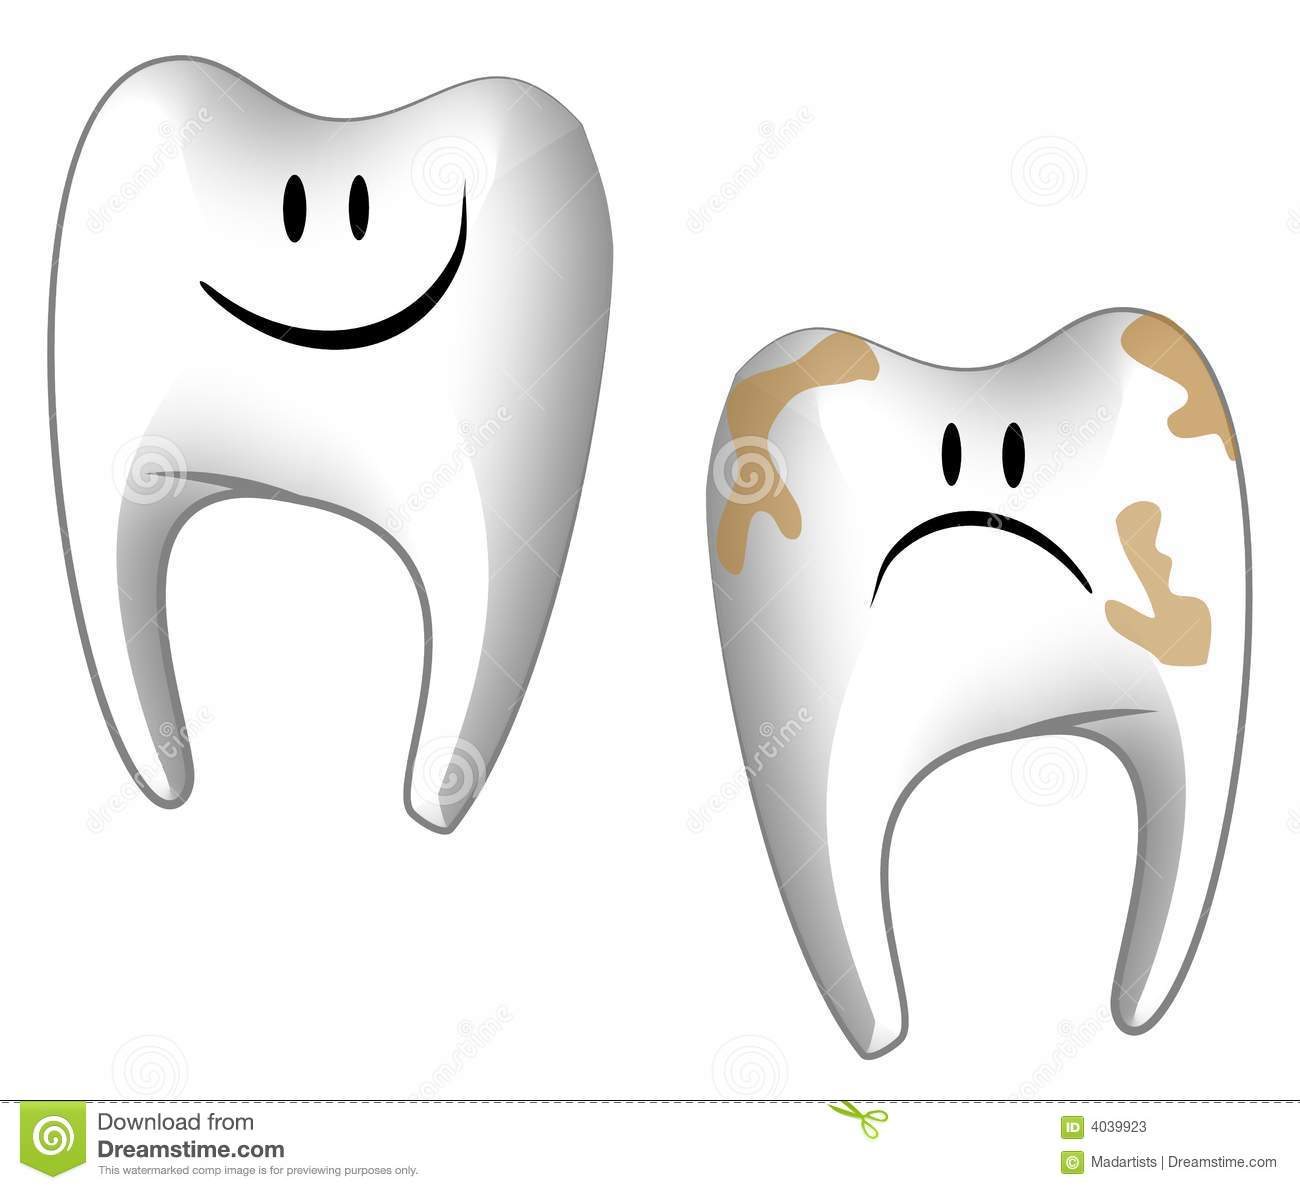 ... teeth, one smiling and healthy - the other one sad and decayed